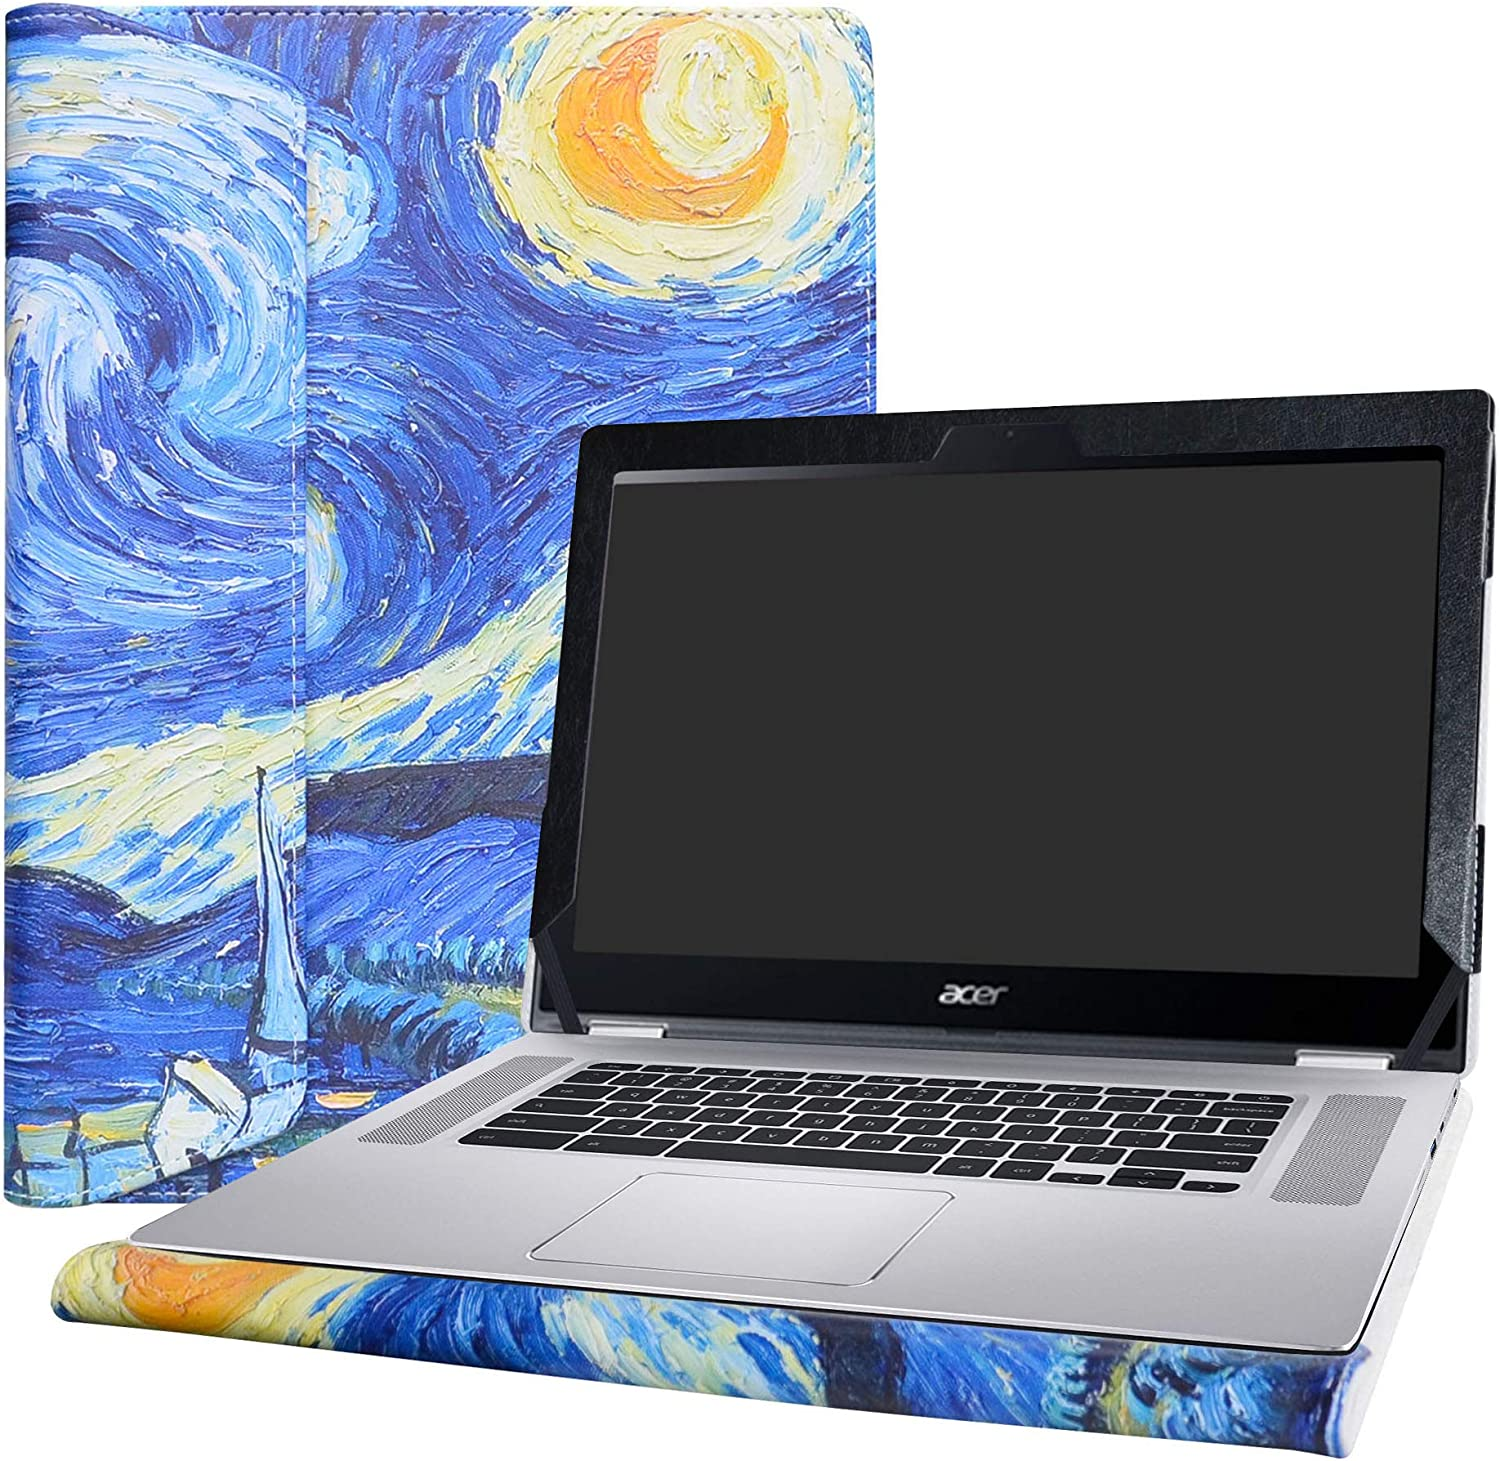 """Alapmk Protective Case Cover for 15.6"""" ACER CHROMEBOOK Spin 15 CP315-1H Series Laptop(Warning:Not fit Acer Chromebook 15 CB315-1HT & C910 CB5-571 CB3-532 CB3-531 CB515 Series),Starry Night"""